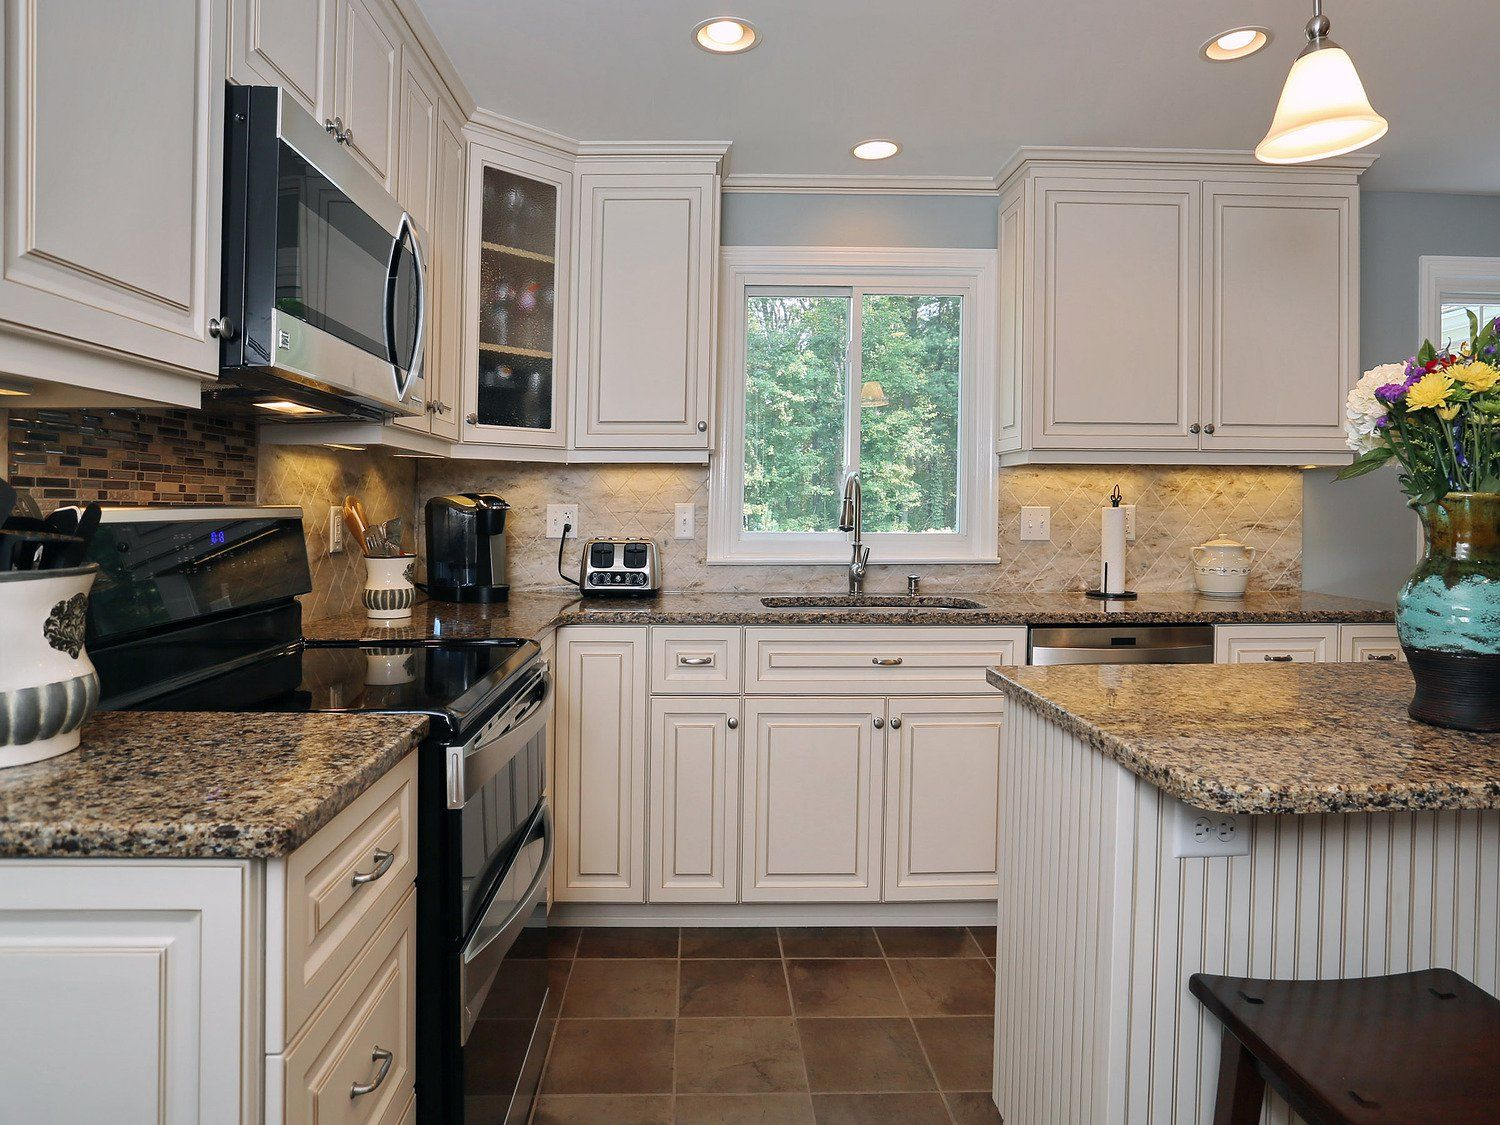 Have You Ever Seen A Canterbury Kitchen Kitchen Cabinets With Black Appliances Black Appliances Kitchen Kitchen Cabinet Design